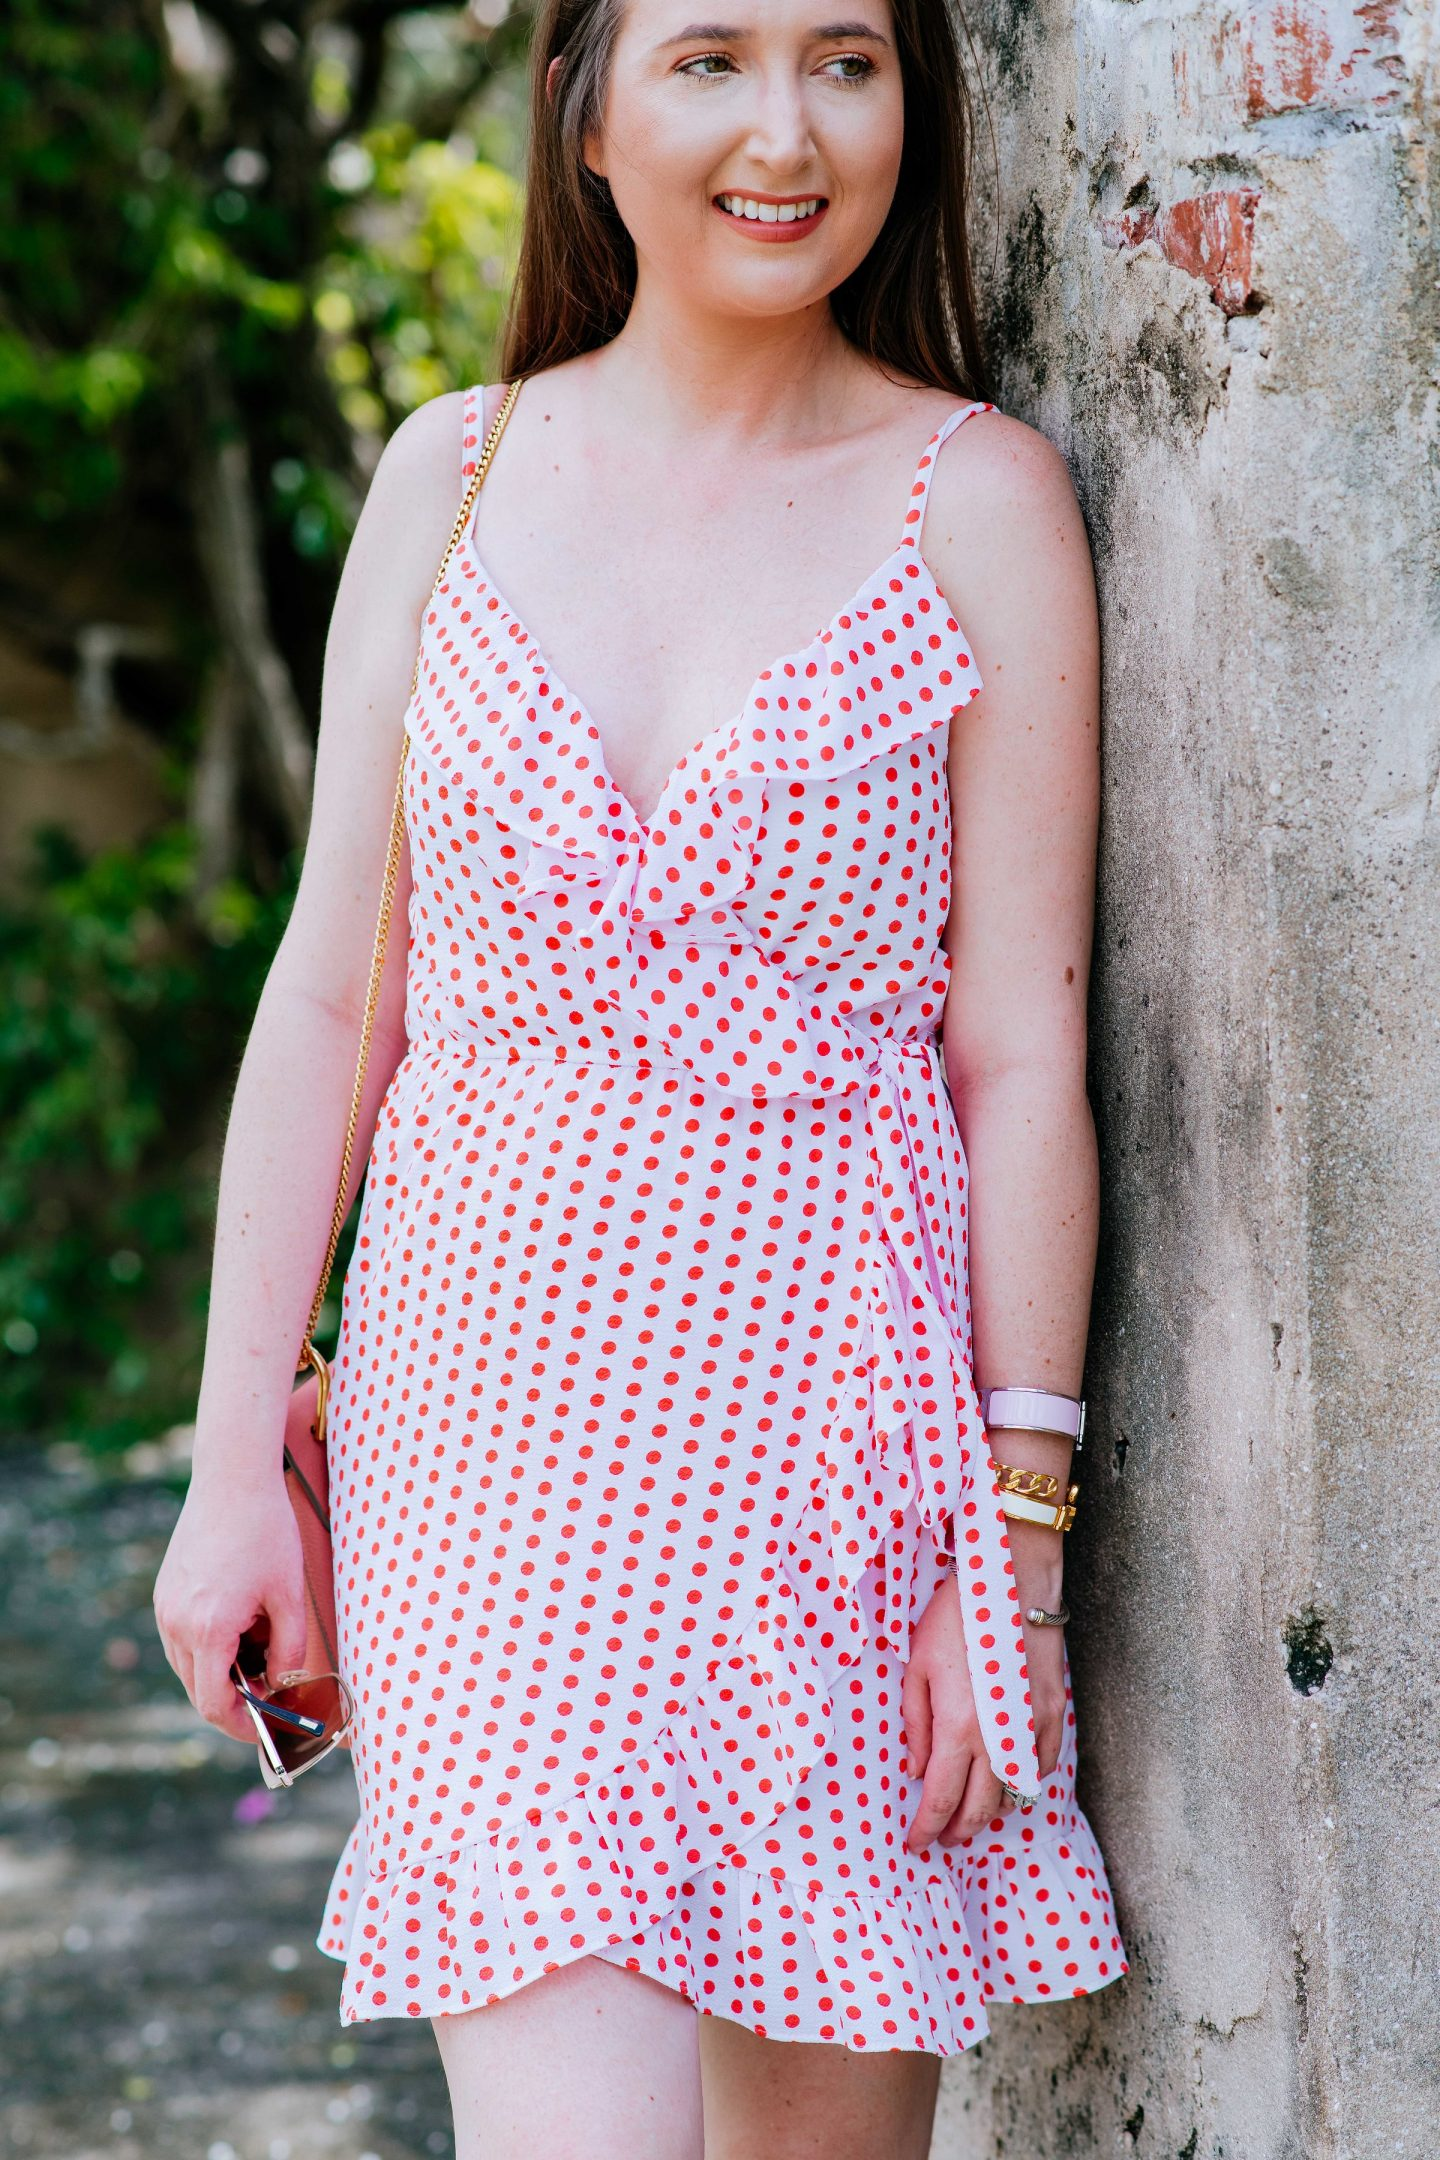 How to wear a polka dot dress, pink polka dot outfit, pink polka dot dress,, polka dots polka dot outfit ideas polka dot style polka dots outfit polka dots fashion polka dot clothes polka dot wedding, summer style, dresses for spring, bloomingdales aqua dress